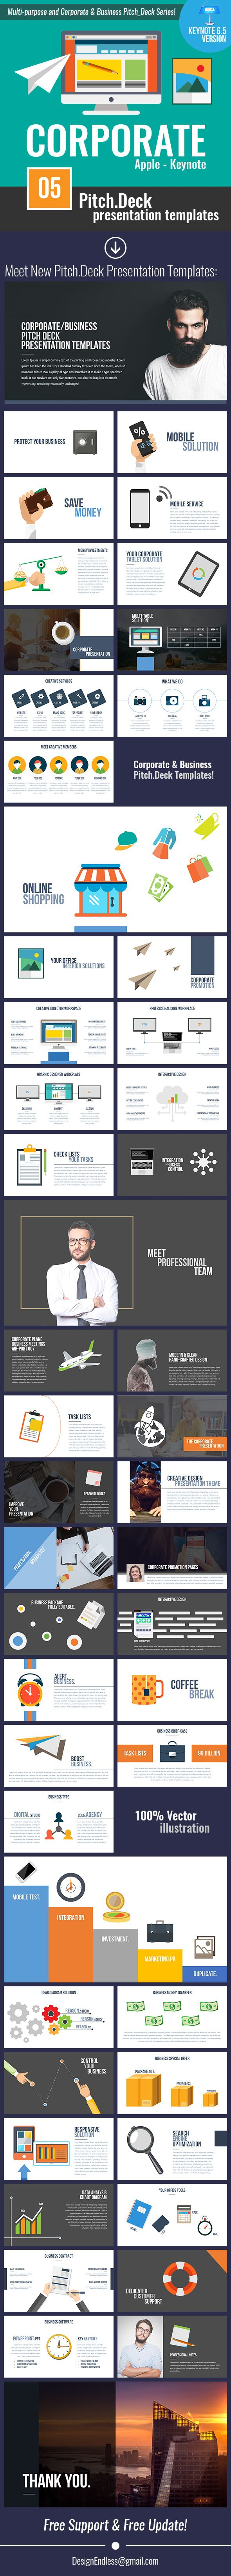 Pitch.Deck - Corporate Keynote/PowerPoint Design, from GraphicRiver.